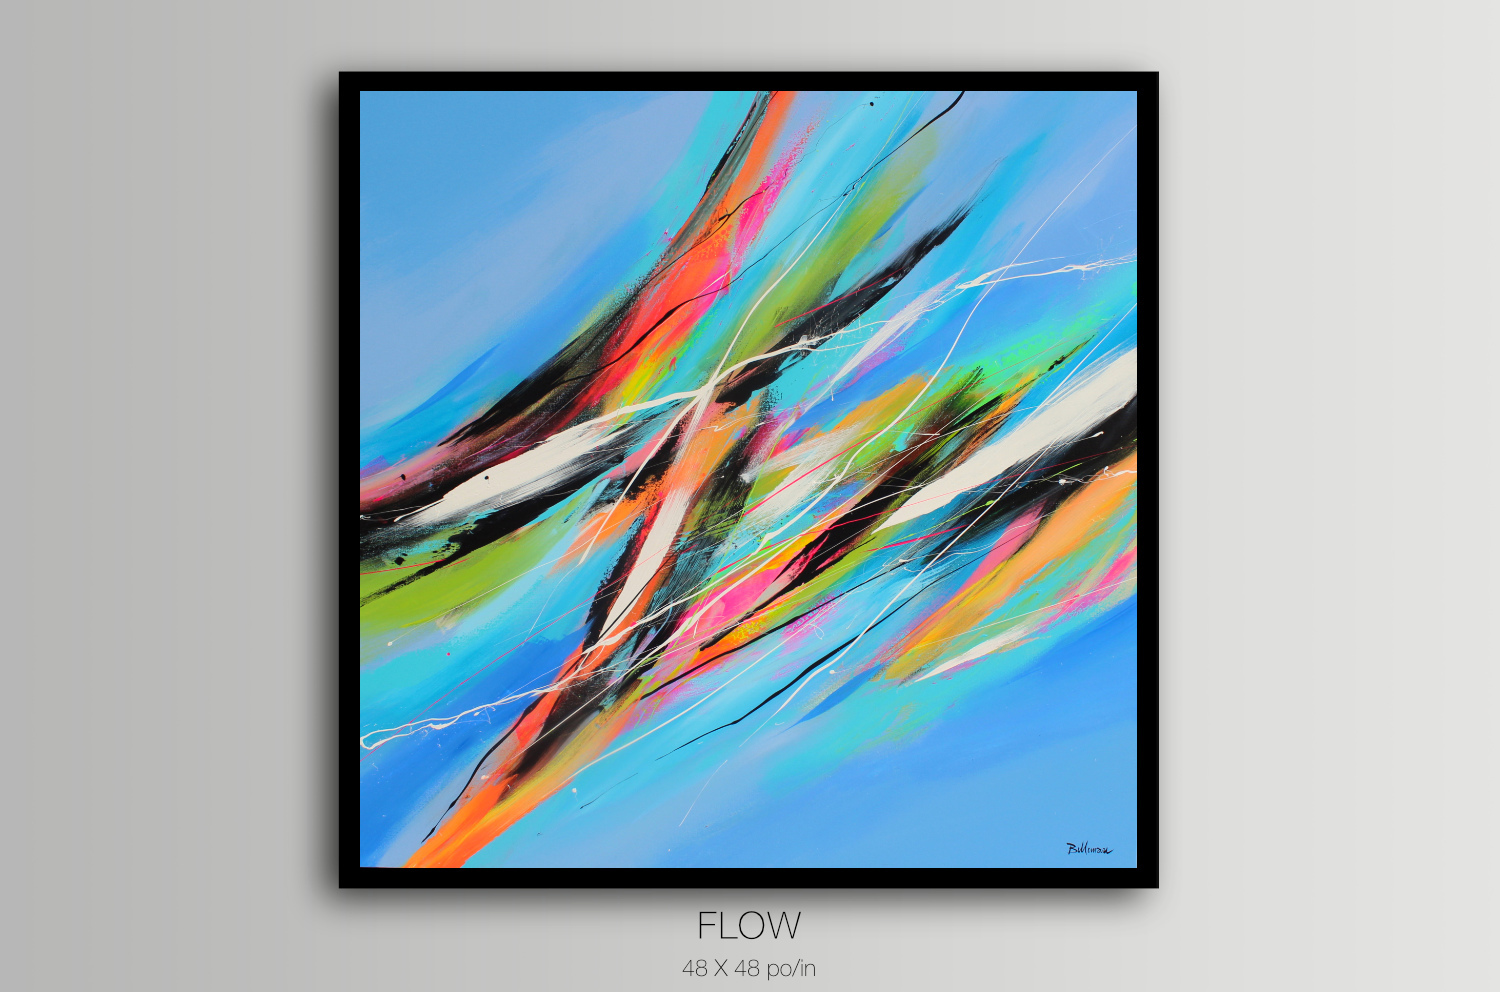 Flow - Rythmik Collection